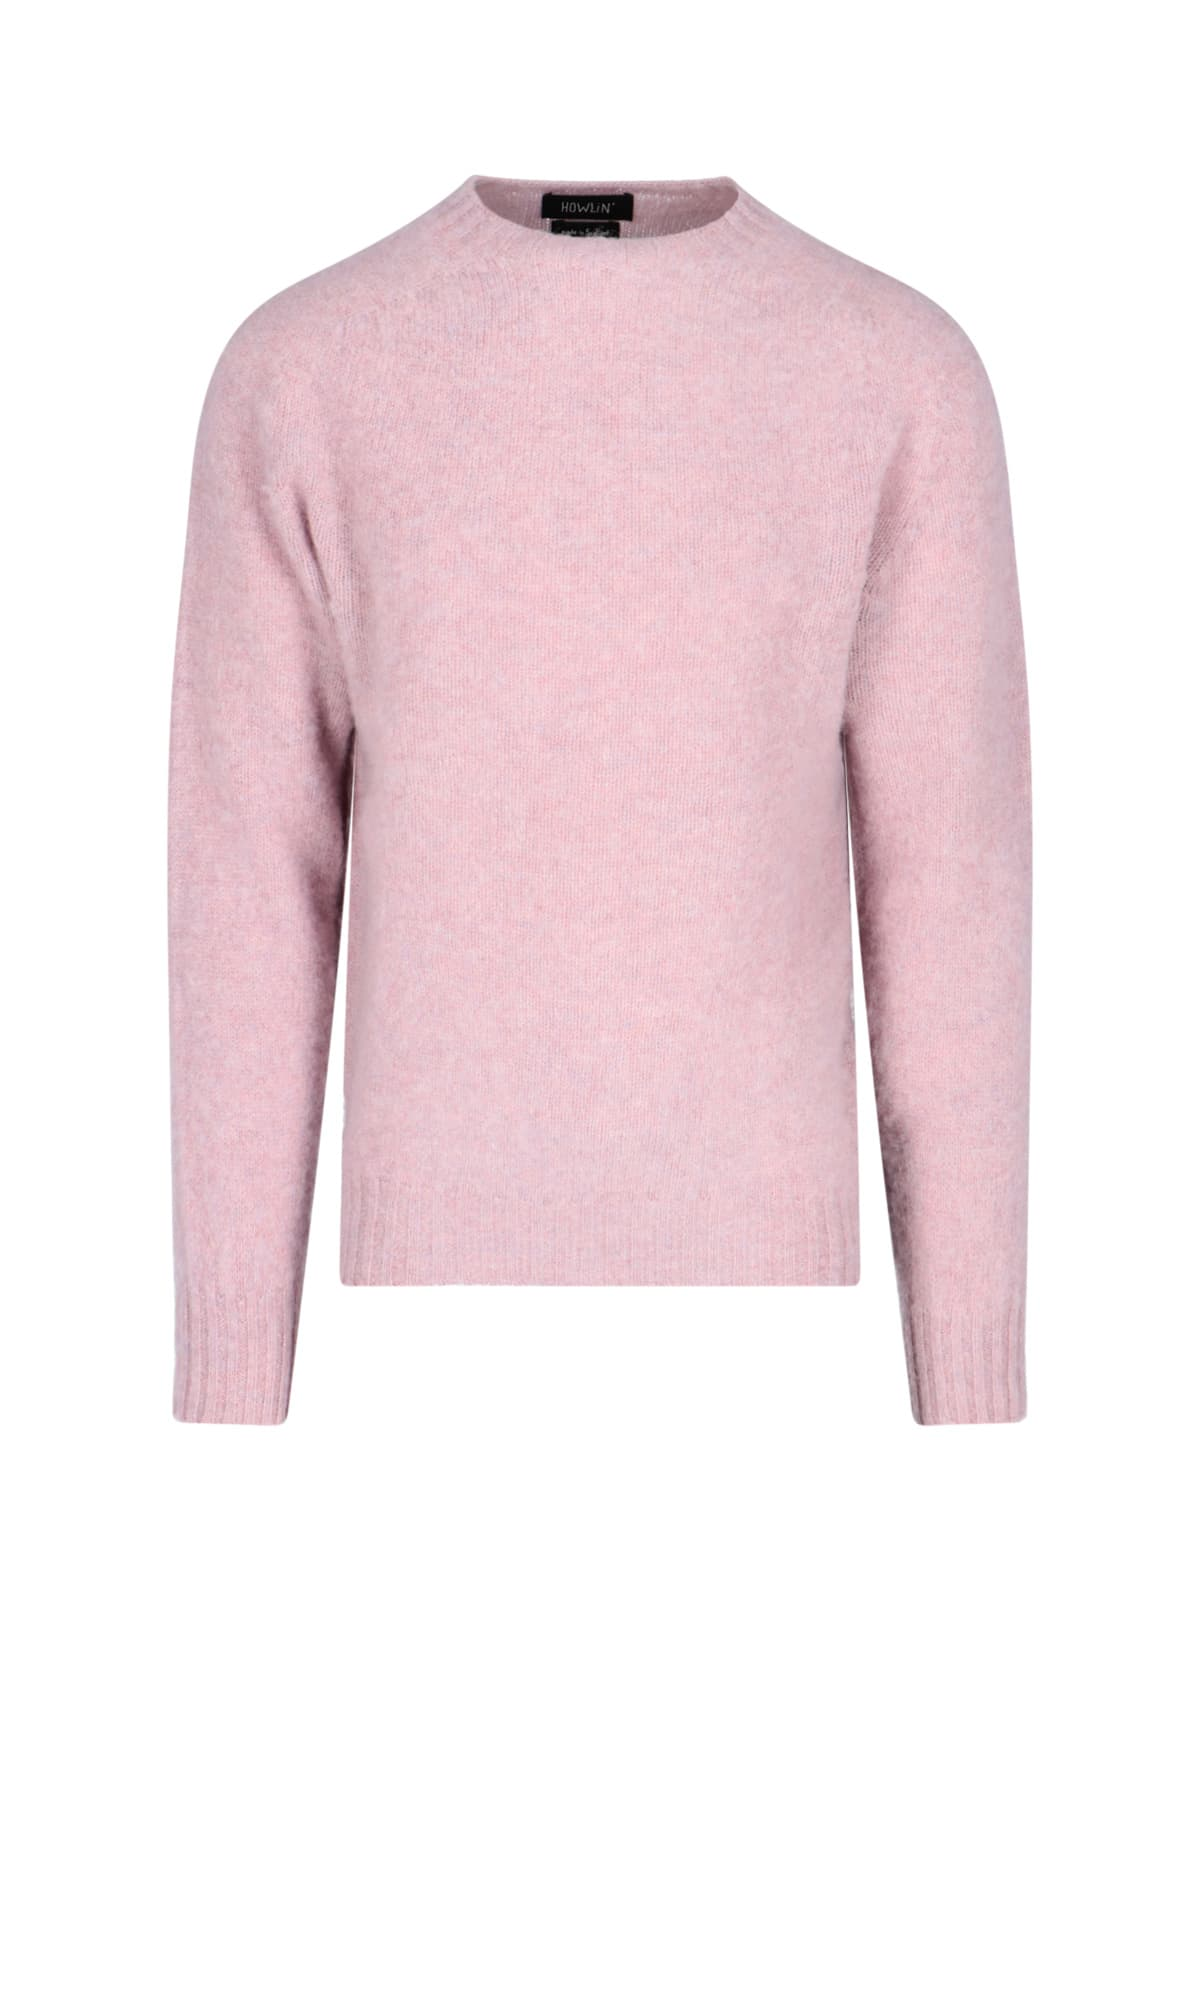 Howlin' Sweater In Pink